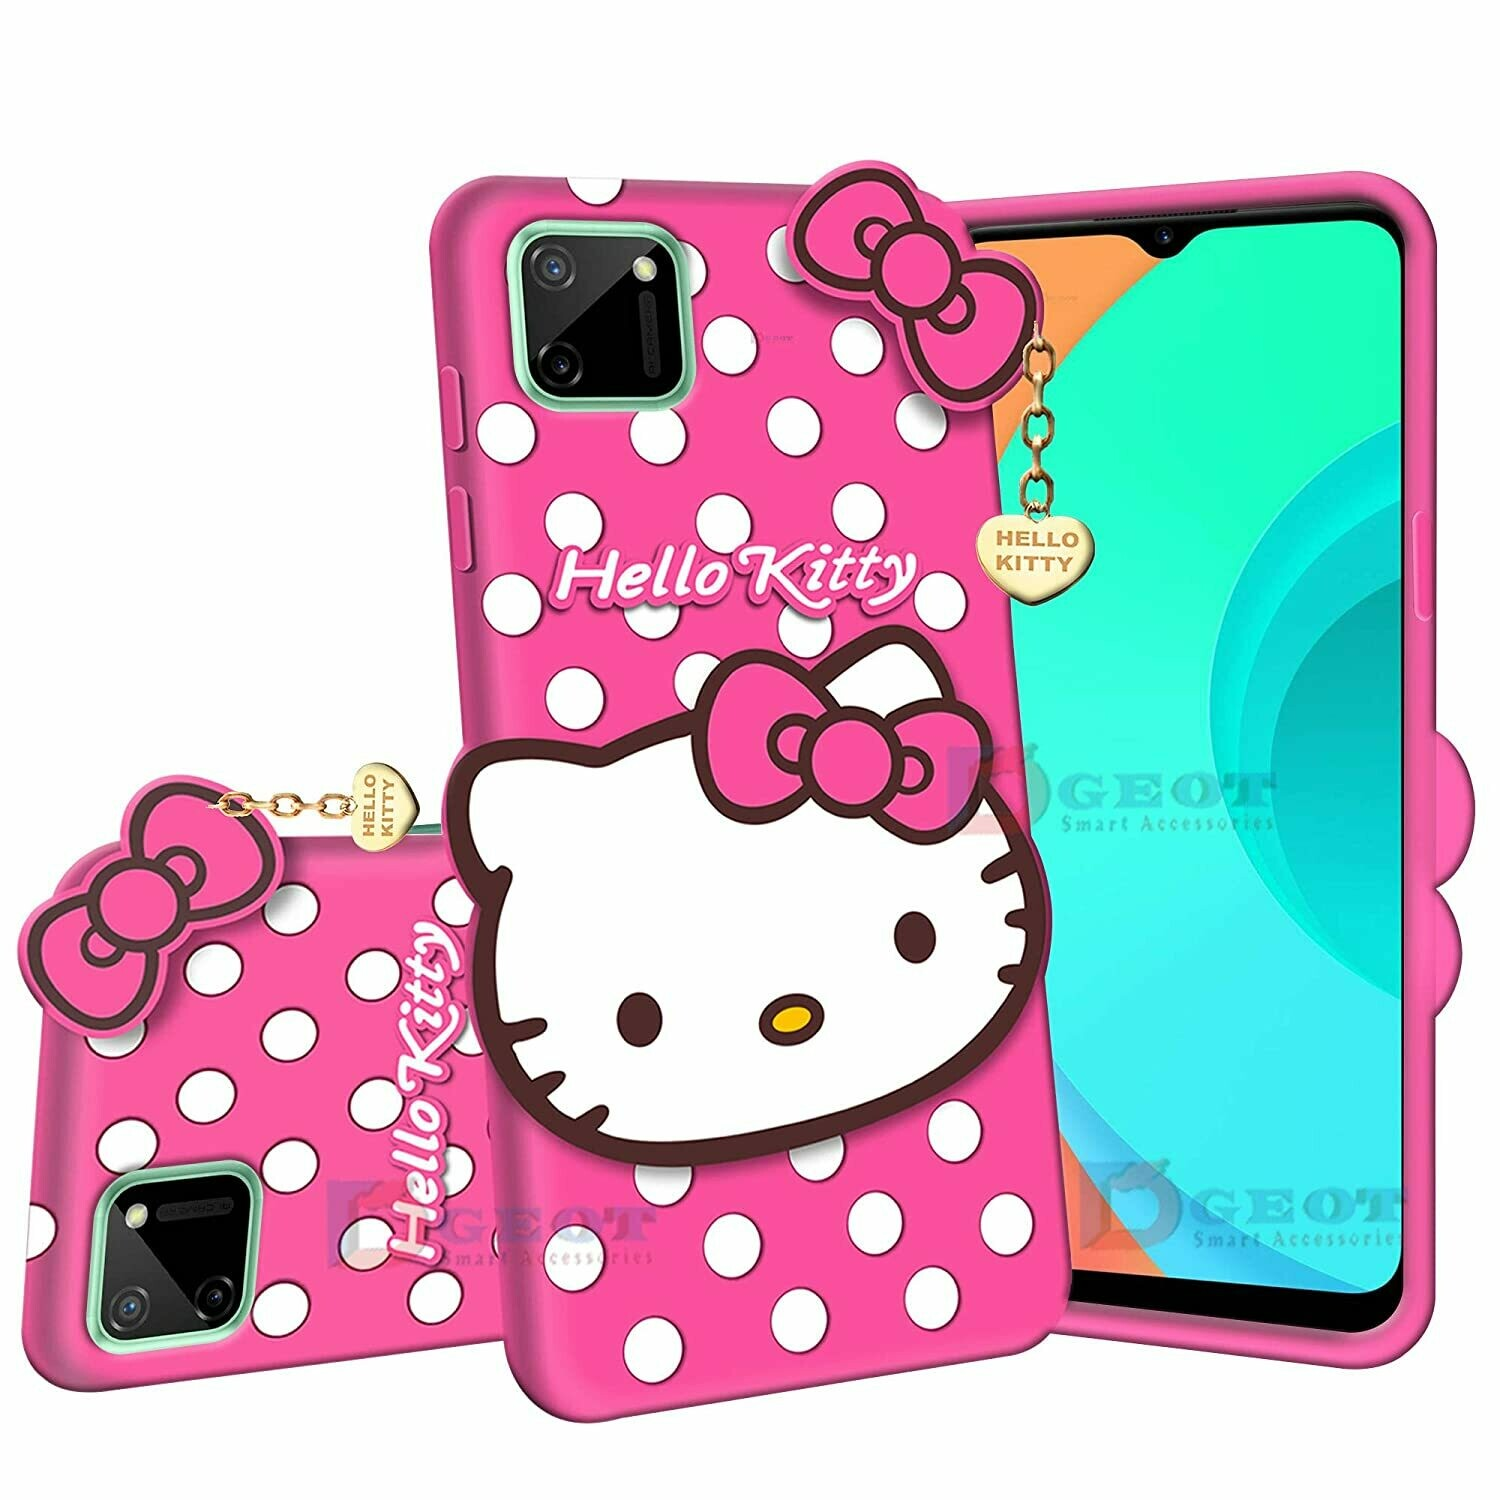 Hello Kitty Back Case Cover Compatible with Realme C11 - | 3D Cute Hello Kitty | Soft Silicone Rubber | Girls Favourite | with Pendant Compatible for Realme C11 -Pink